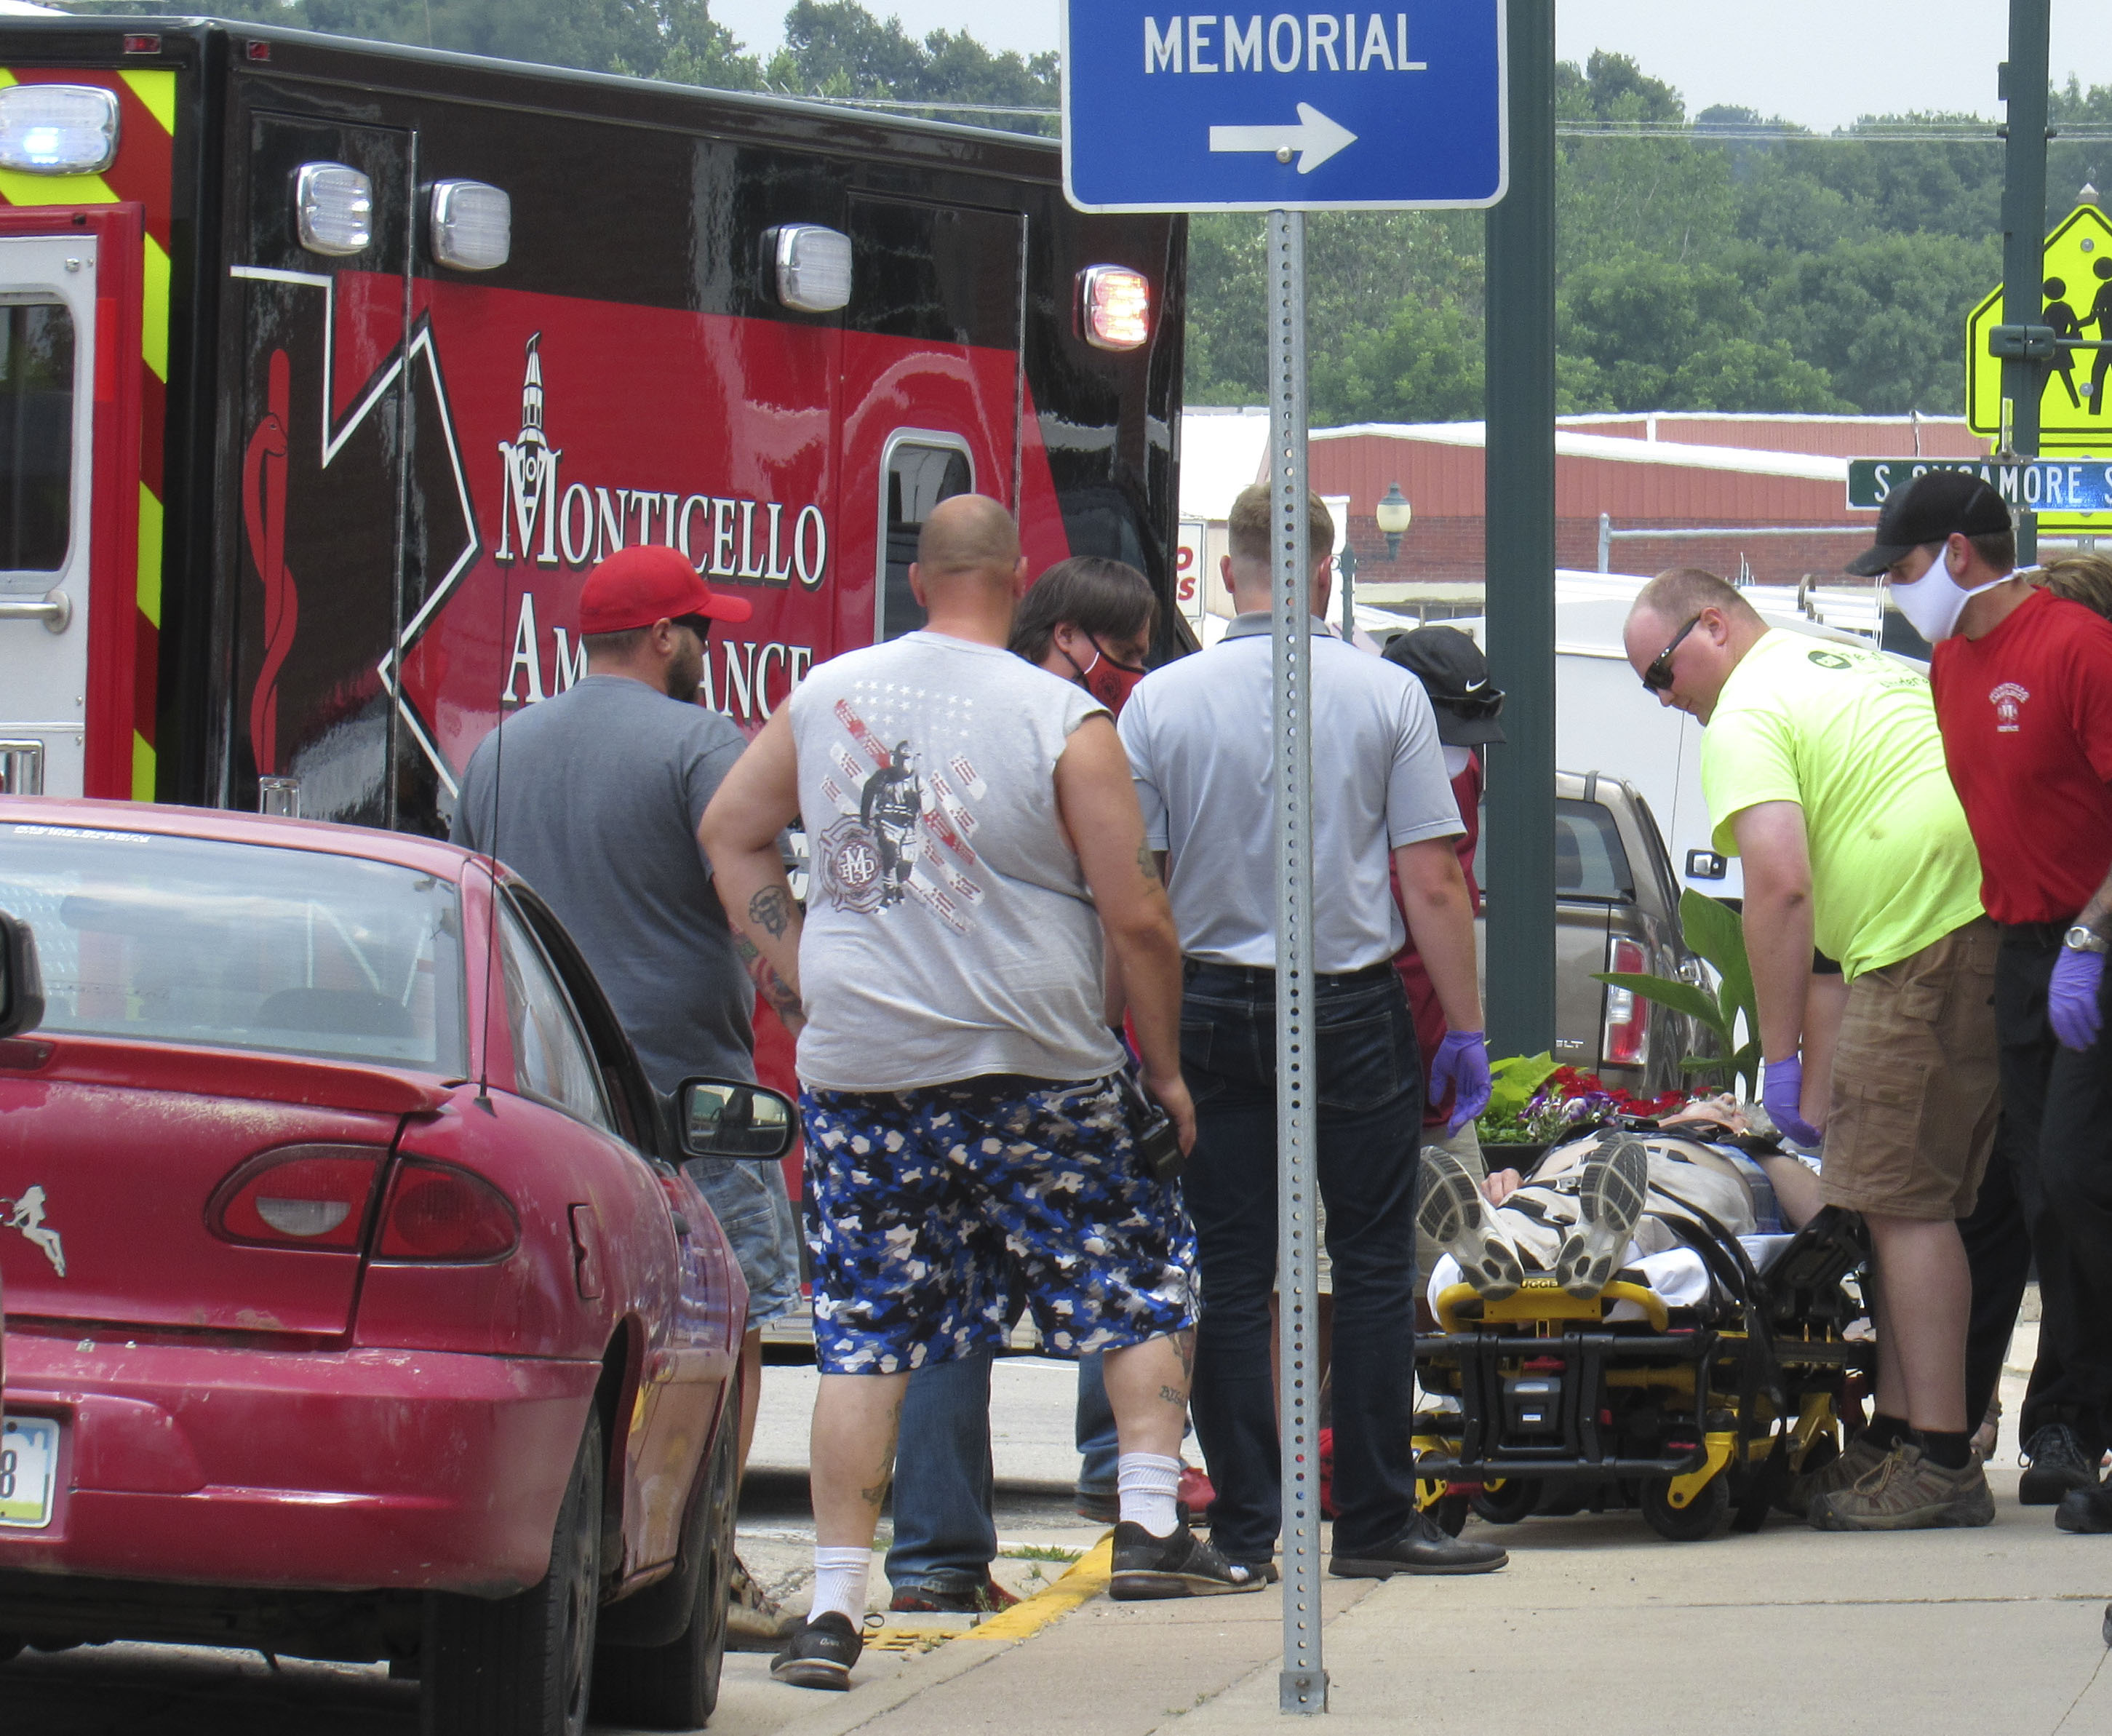 On July 7, the Monticello Ambulance and Fire Departments were called to Superior Appliance on the corner of E. First Street and S. Sycamore Street for a report of an older male who passed out on the sidewalk. (Photo by Kim Brooks)